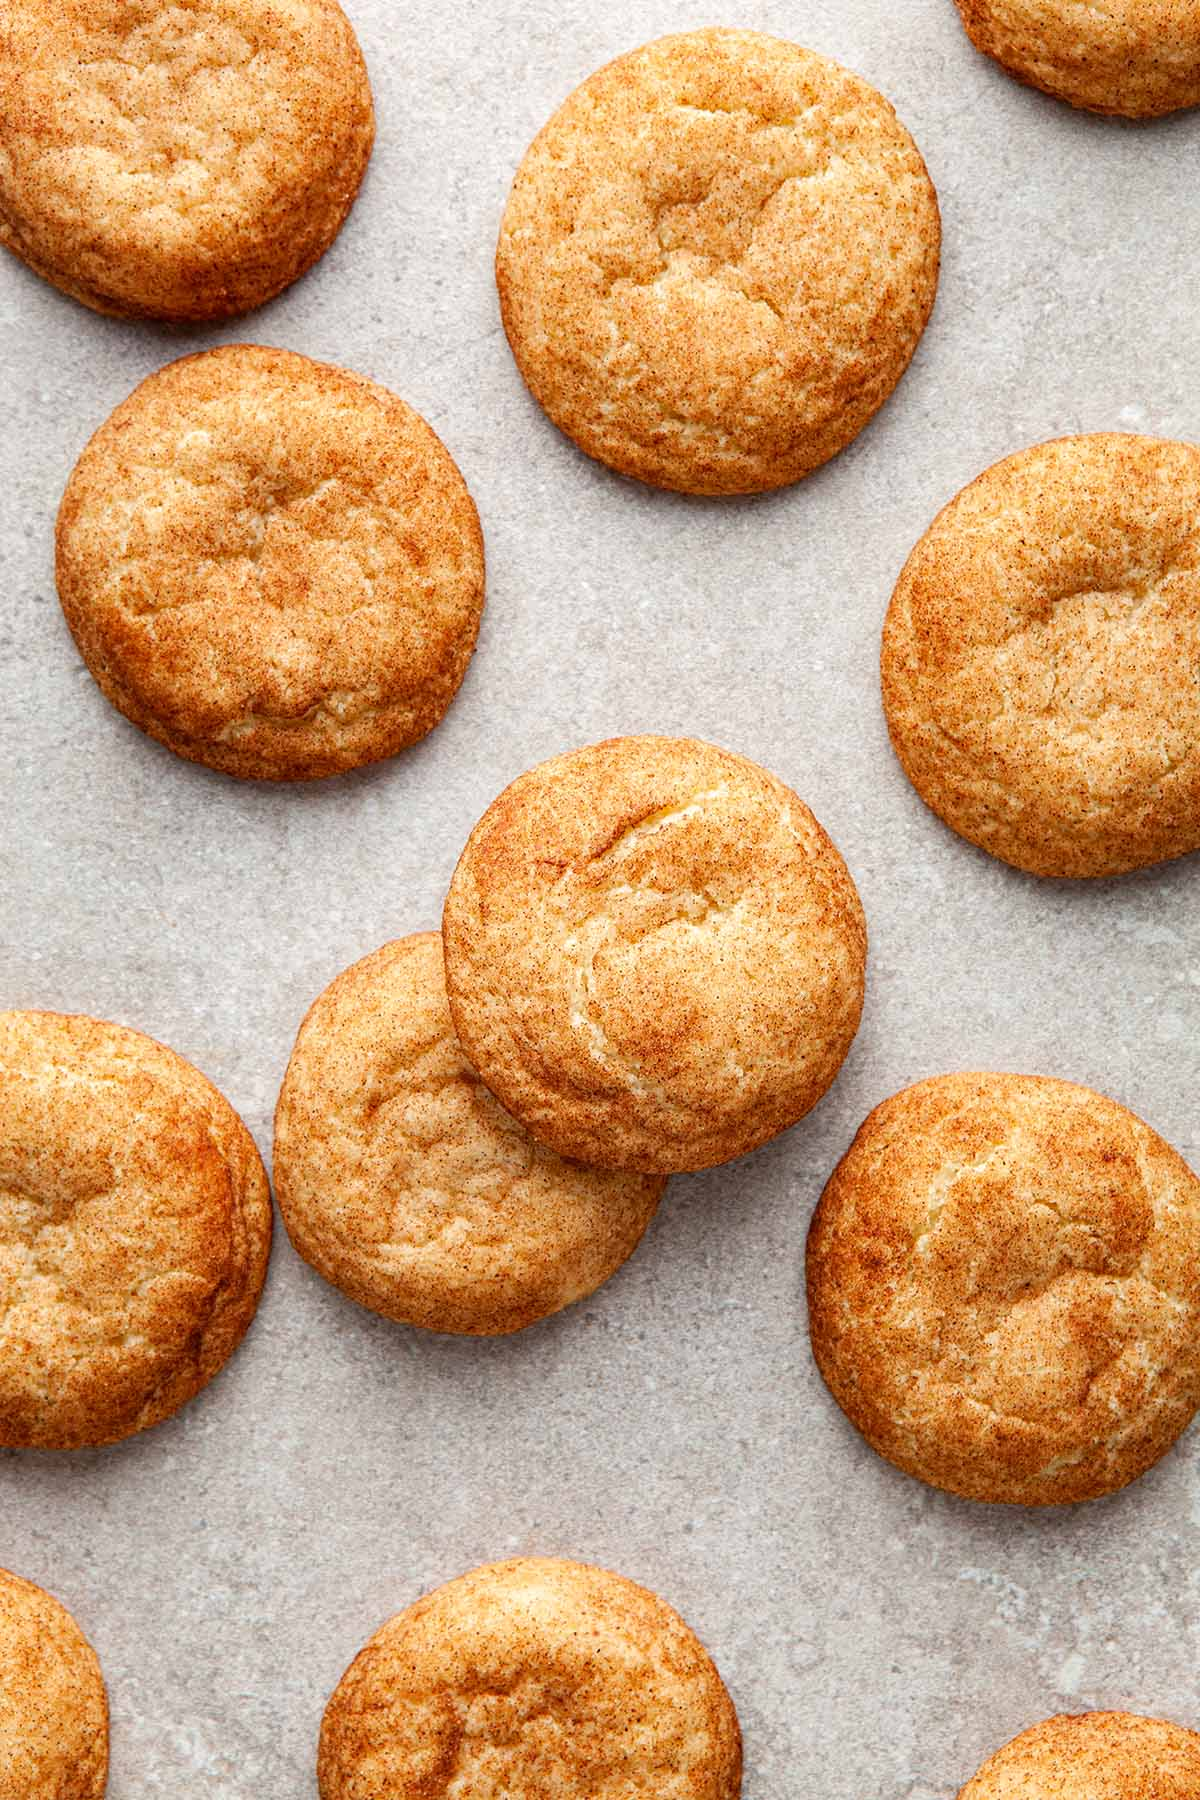 A pile of snickerdoodles without cream of tartar on a stone surface.